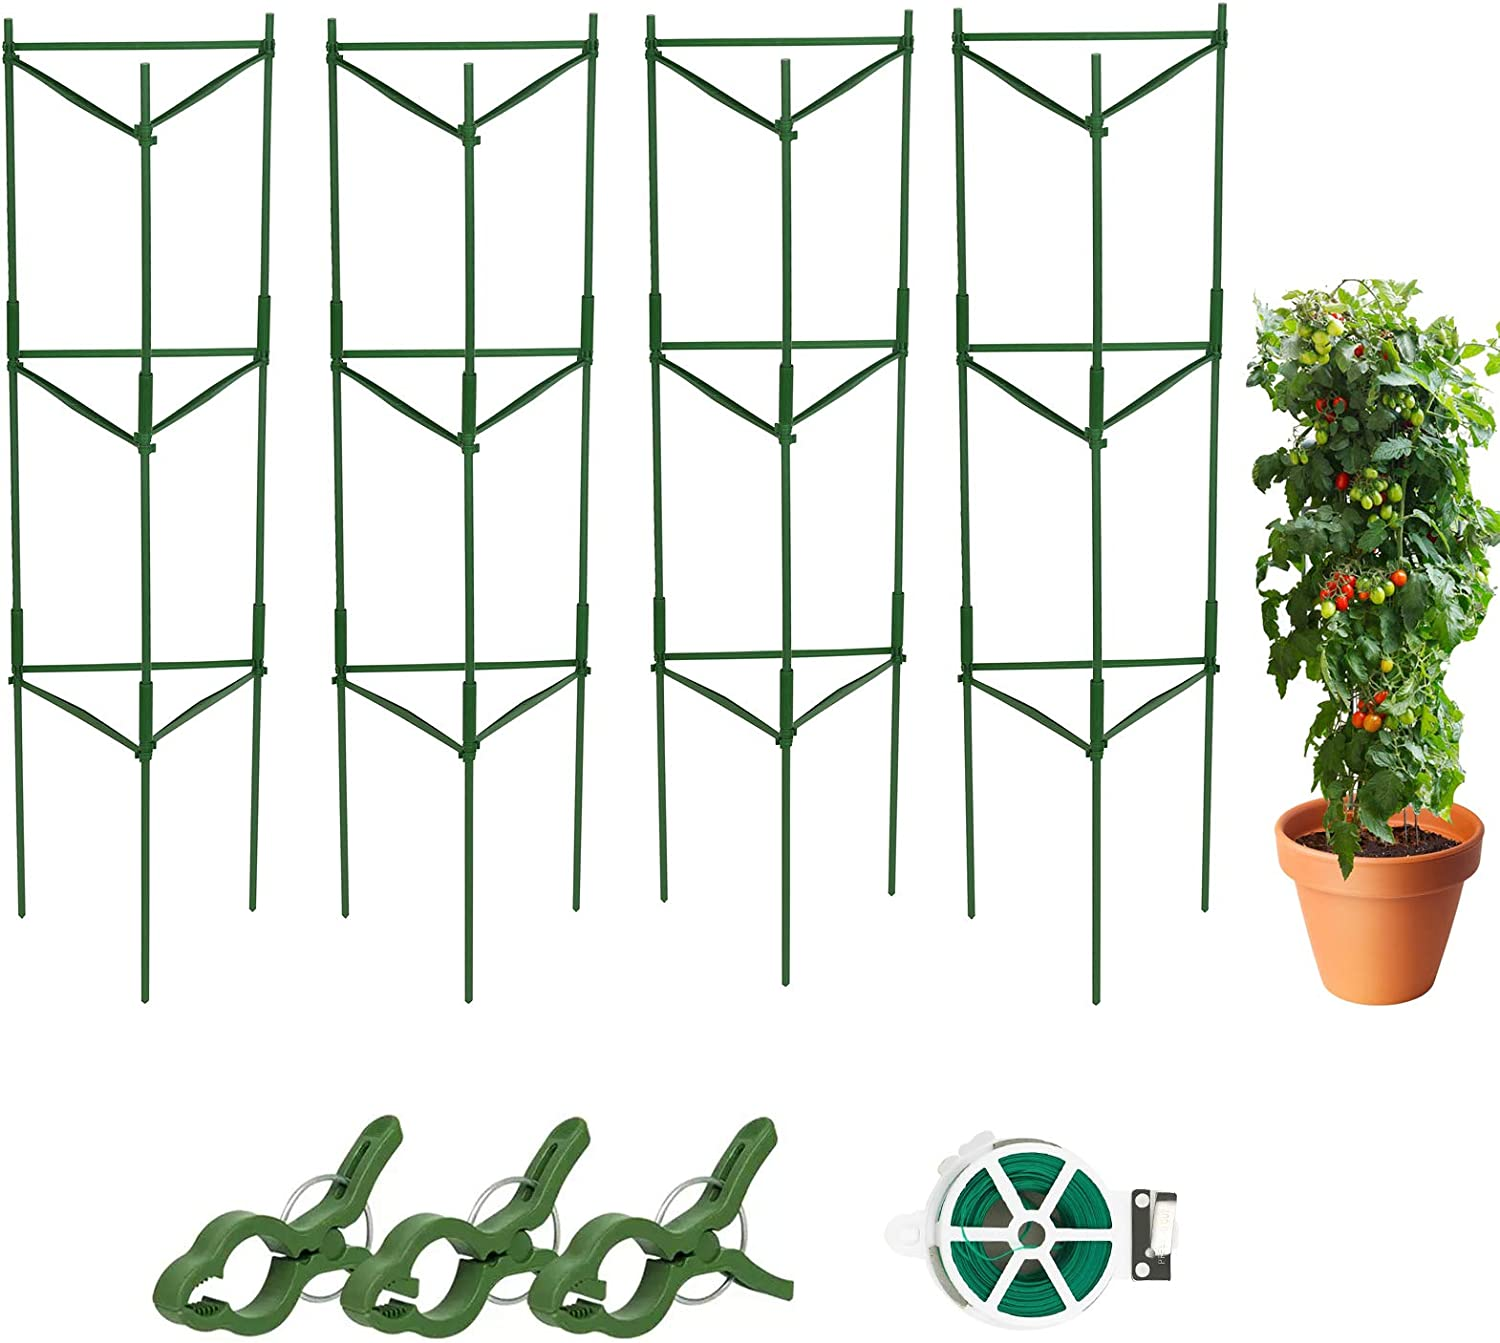 ACTREY Tomato Cages Assembled Plant Supports, 4 Pack Tomatoes Trellis Plant Cages Tomato Stakes Garden Cages, Multi-Functional Tomato Trellis for Vertical Climbing Plants